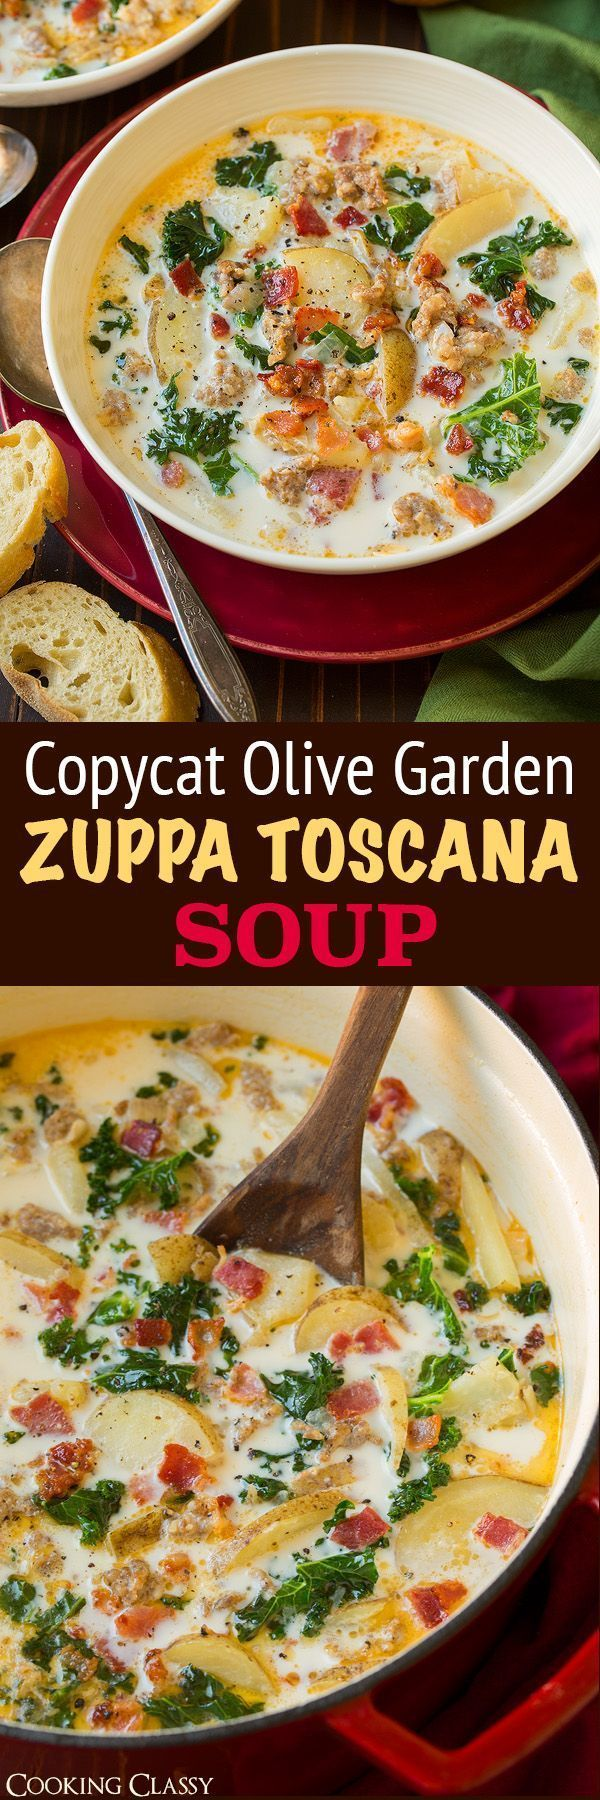 17 Best Images About Receipes Soup On Pinterest Winter Vegetables Olive Garden Minestrone